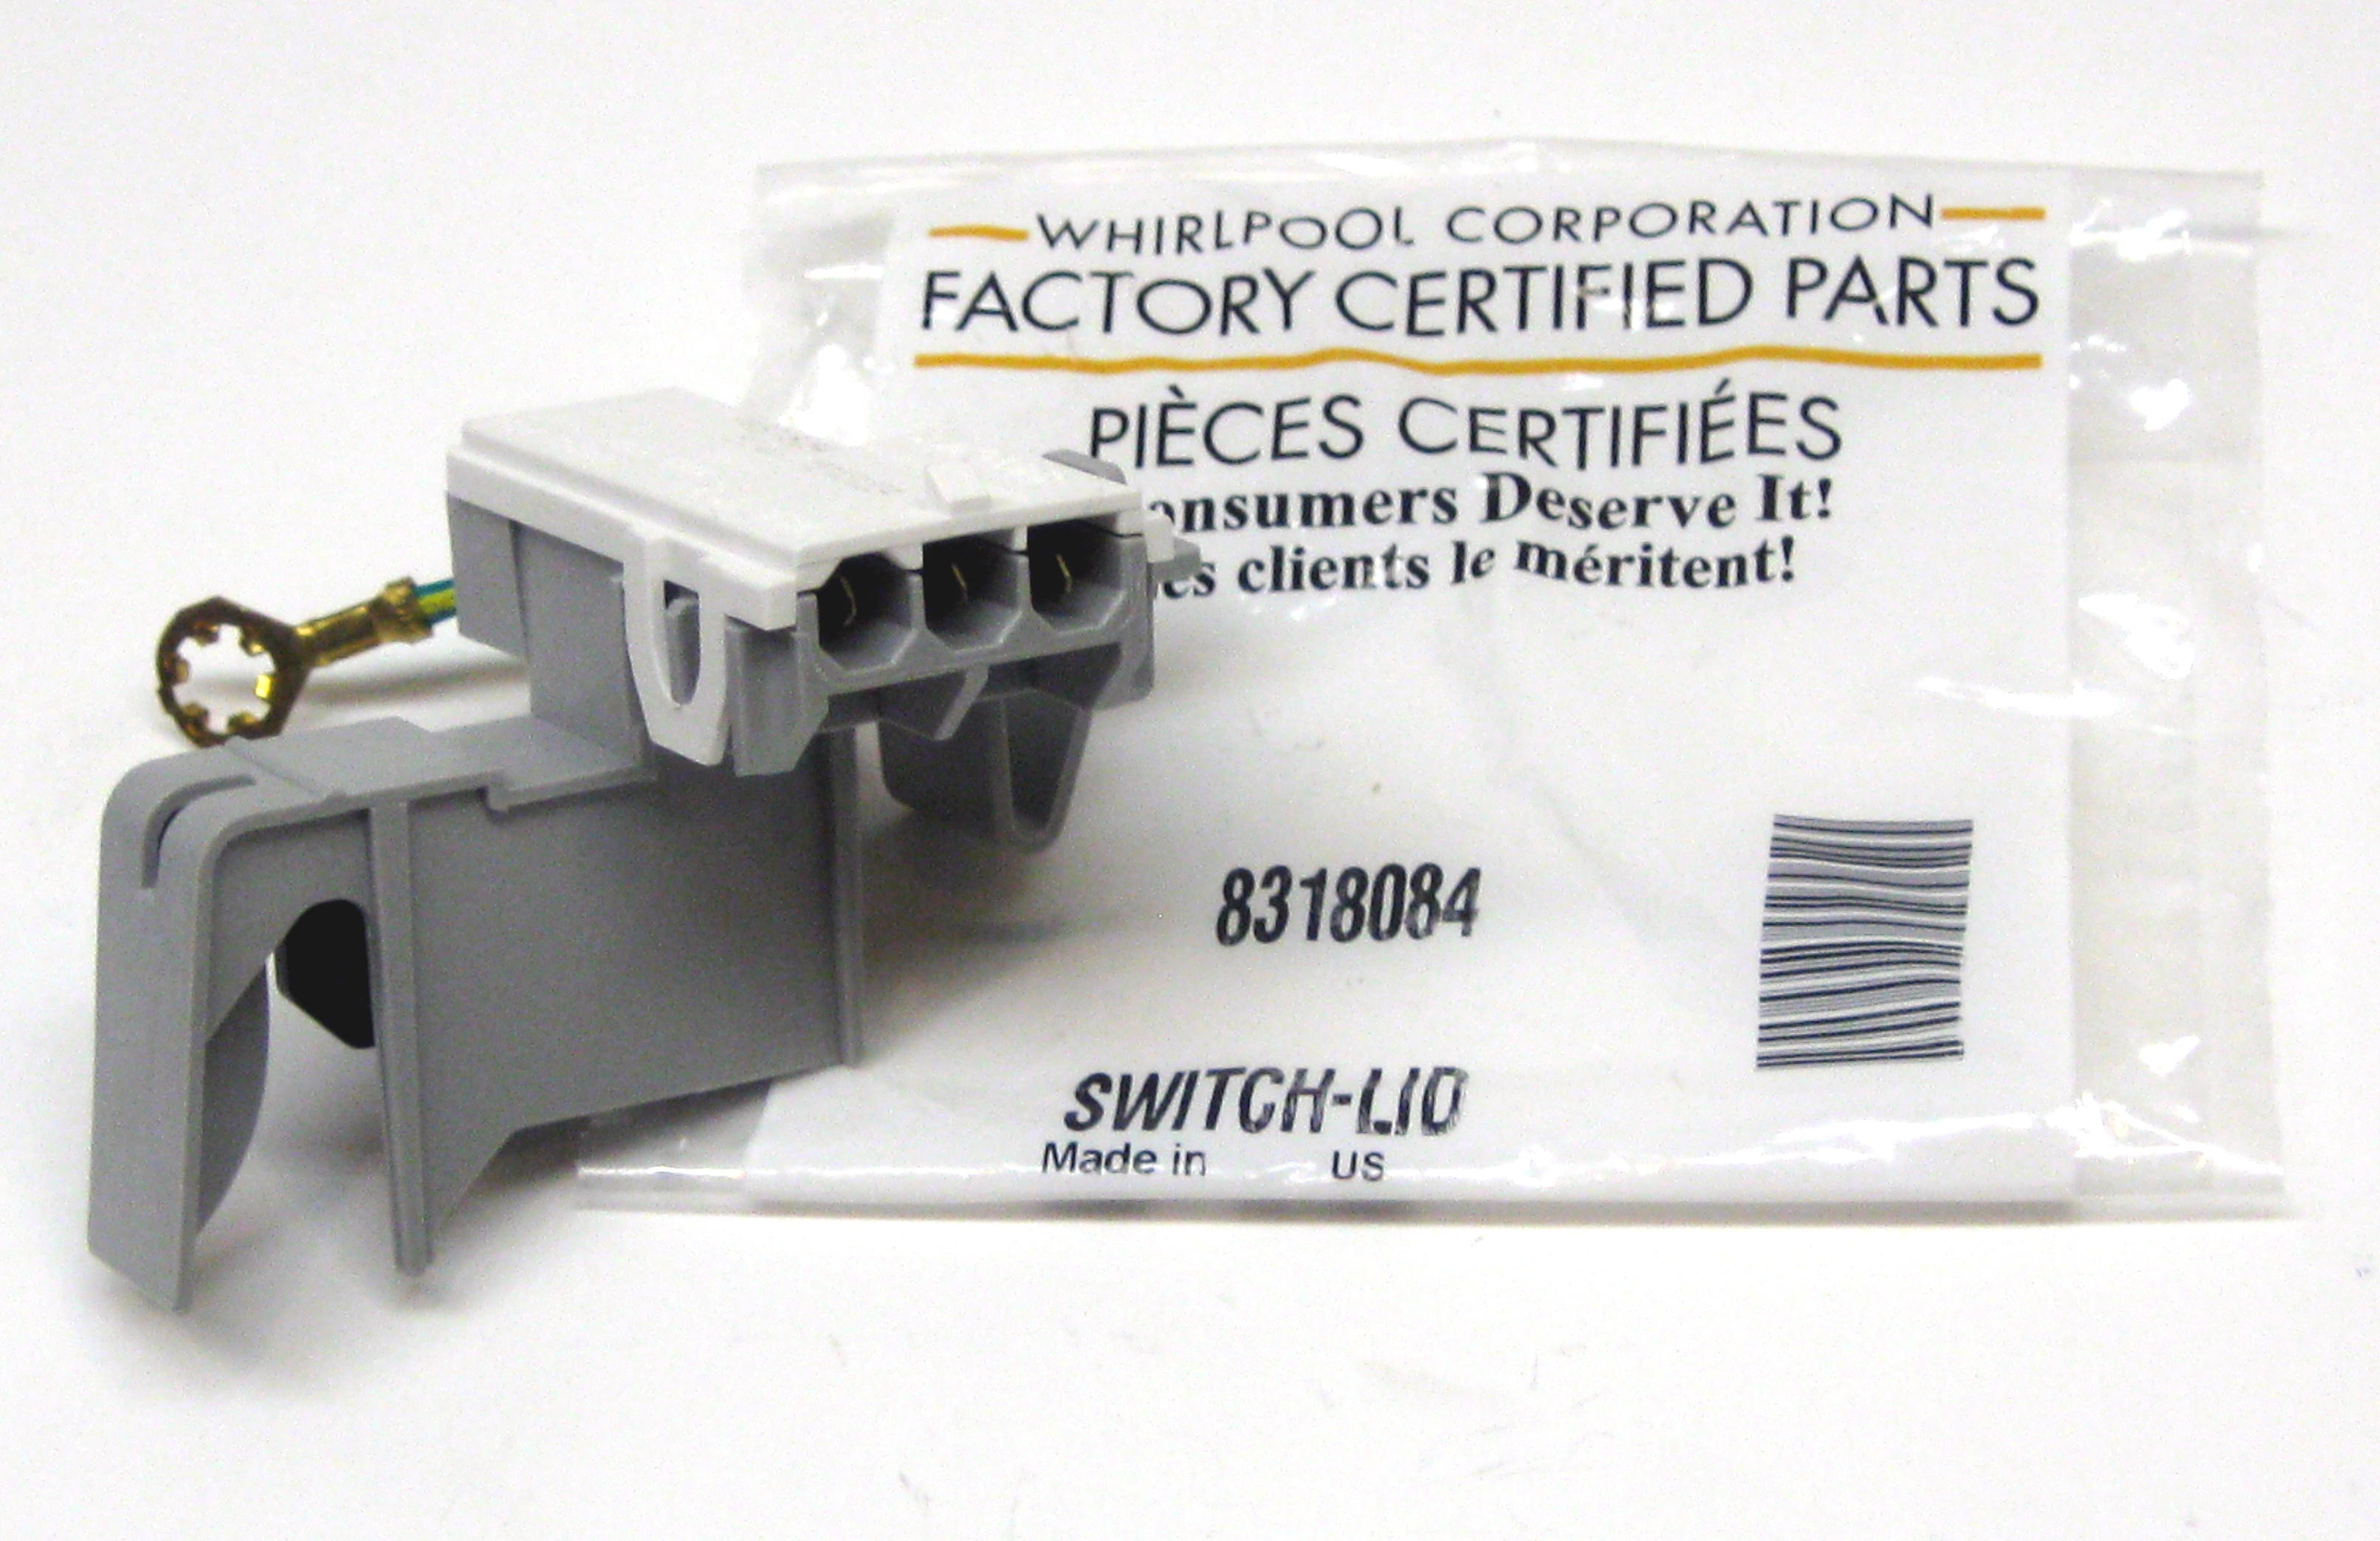 Furnace Control Control Replacement For Oem Models Including Goodman